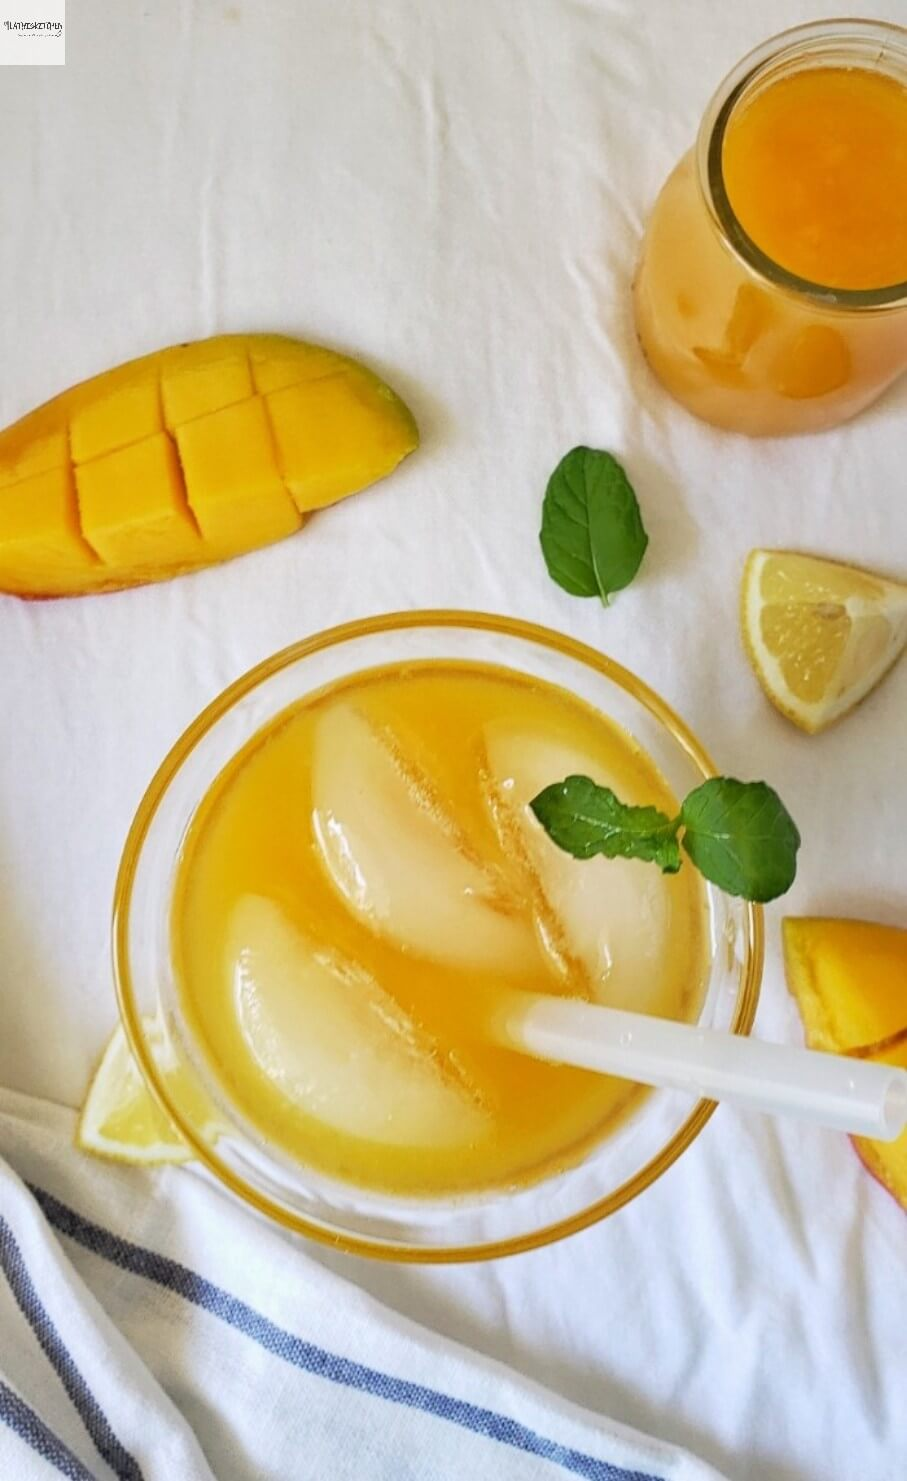 Glass of Mango Lemonade with mango and lemon wedges on side and mint leaves.